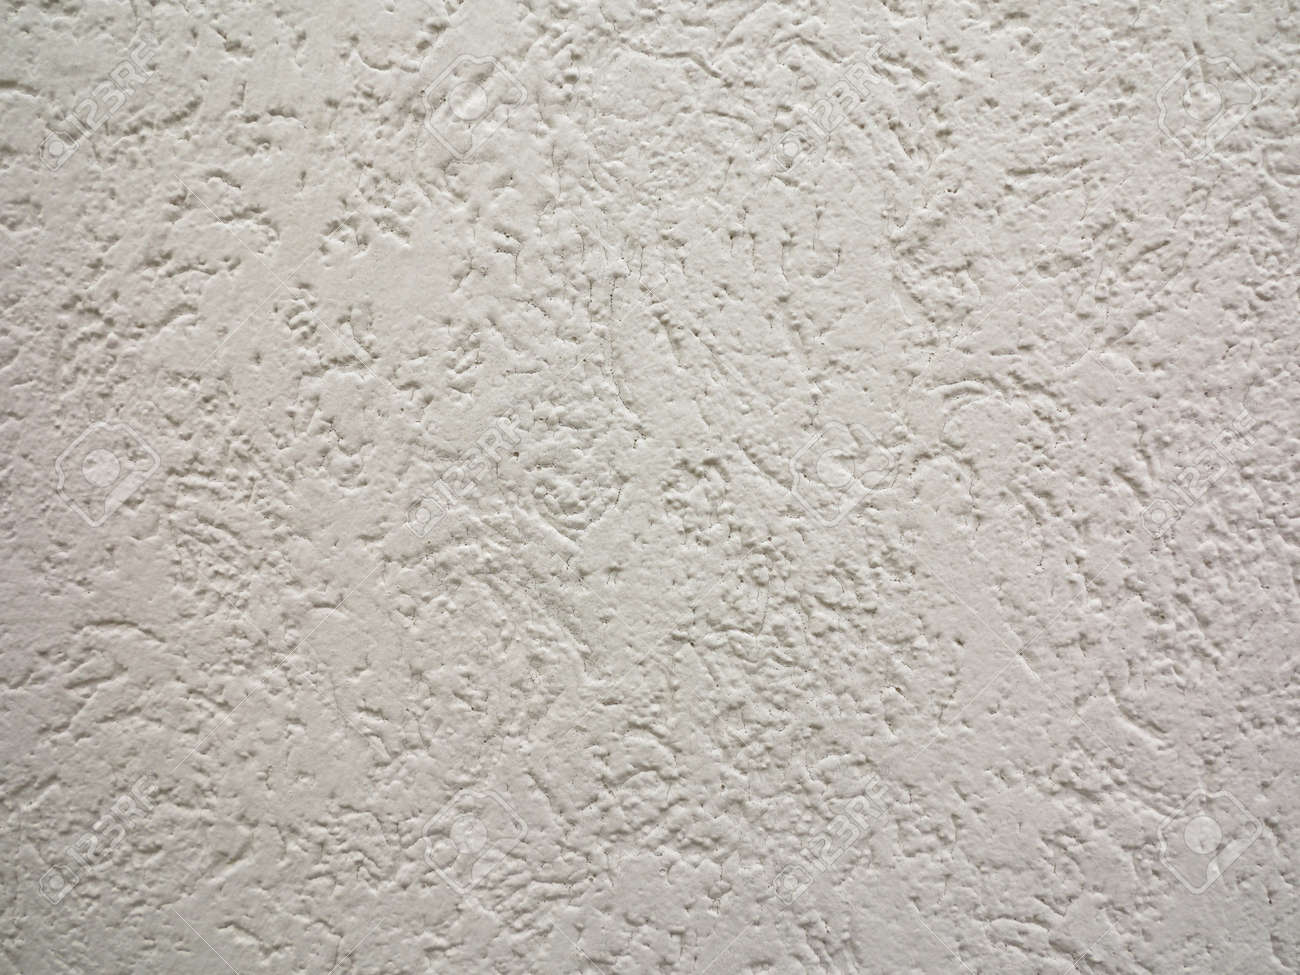 Gray Paint Concrete Wall Background Or Texture Stock Photo Picture